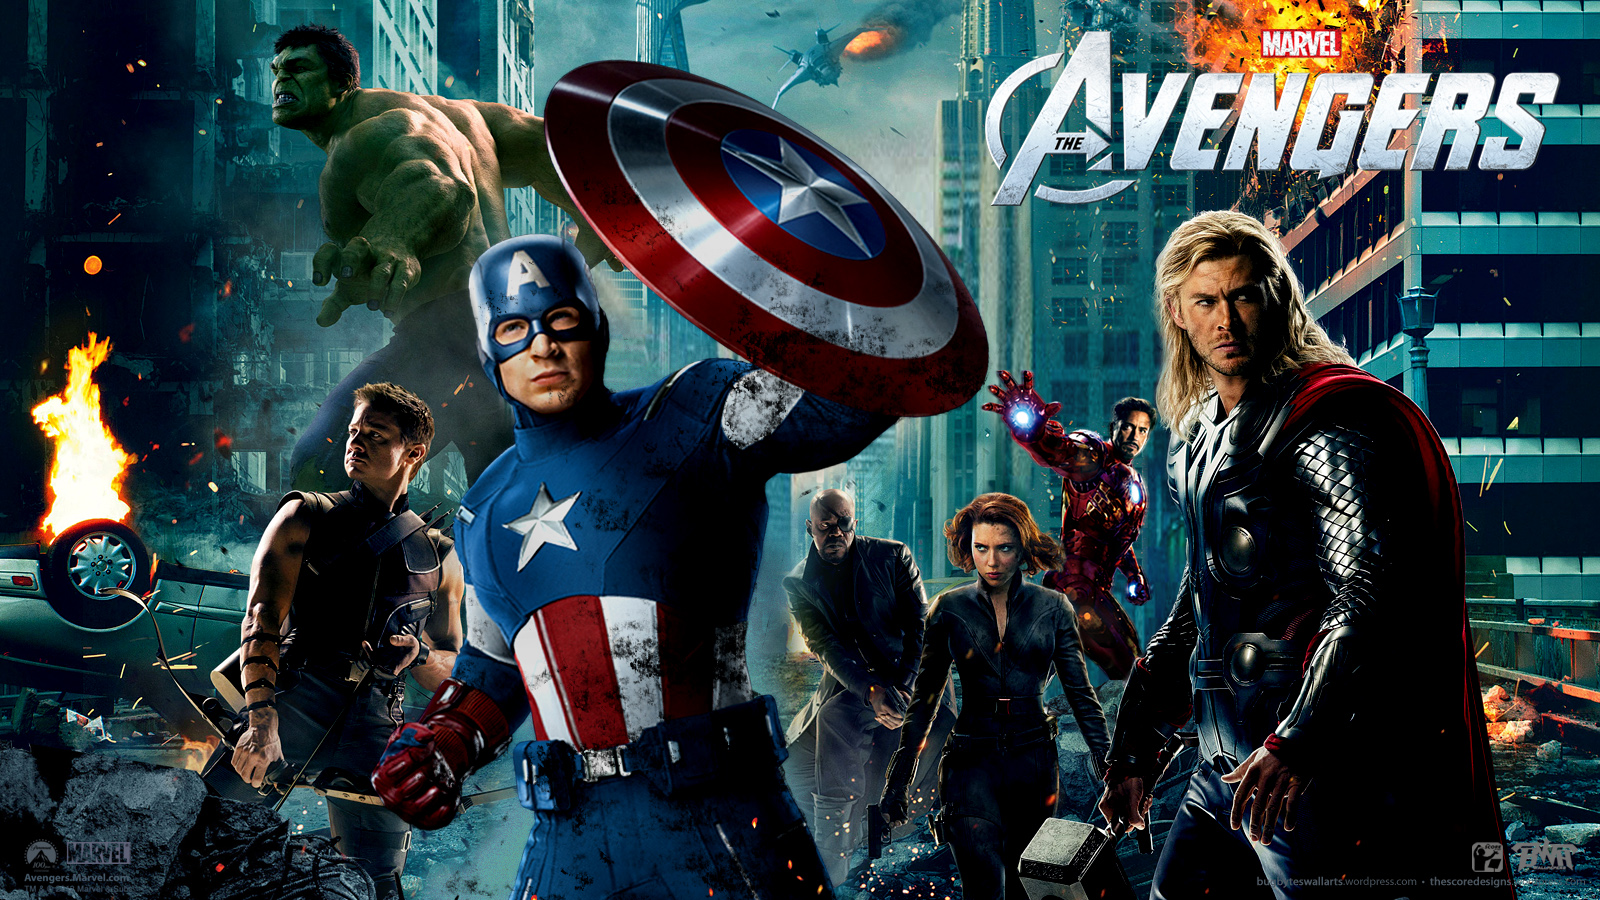 Avengers Hollywood Best Movie Hd Wallpapers 2015 All Hd Wallpapers